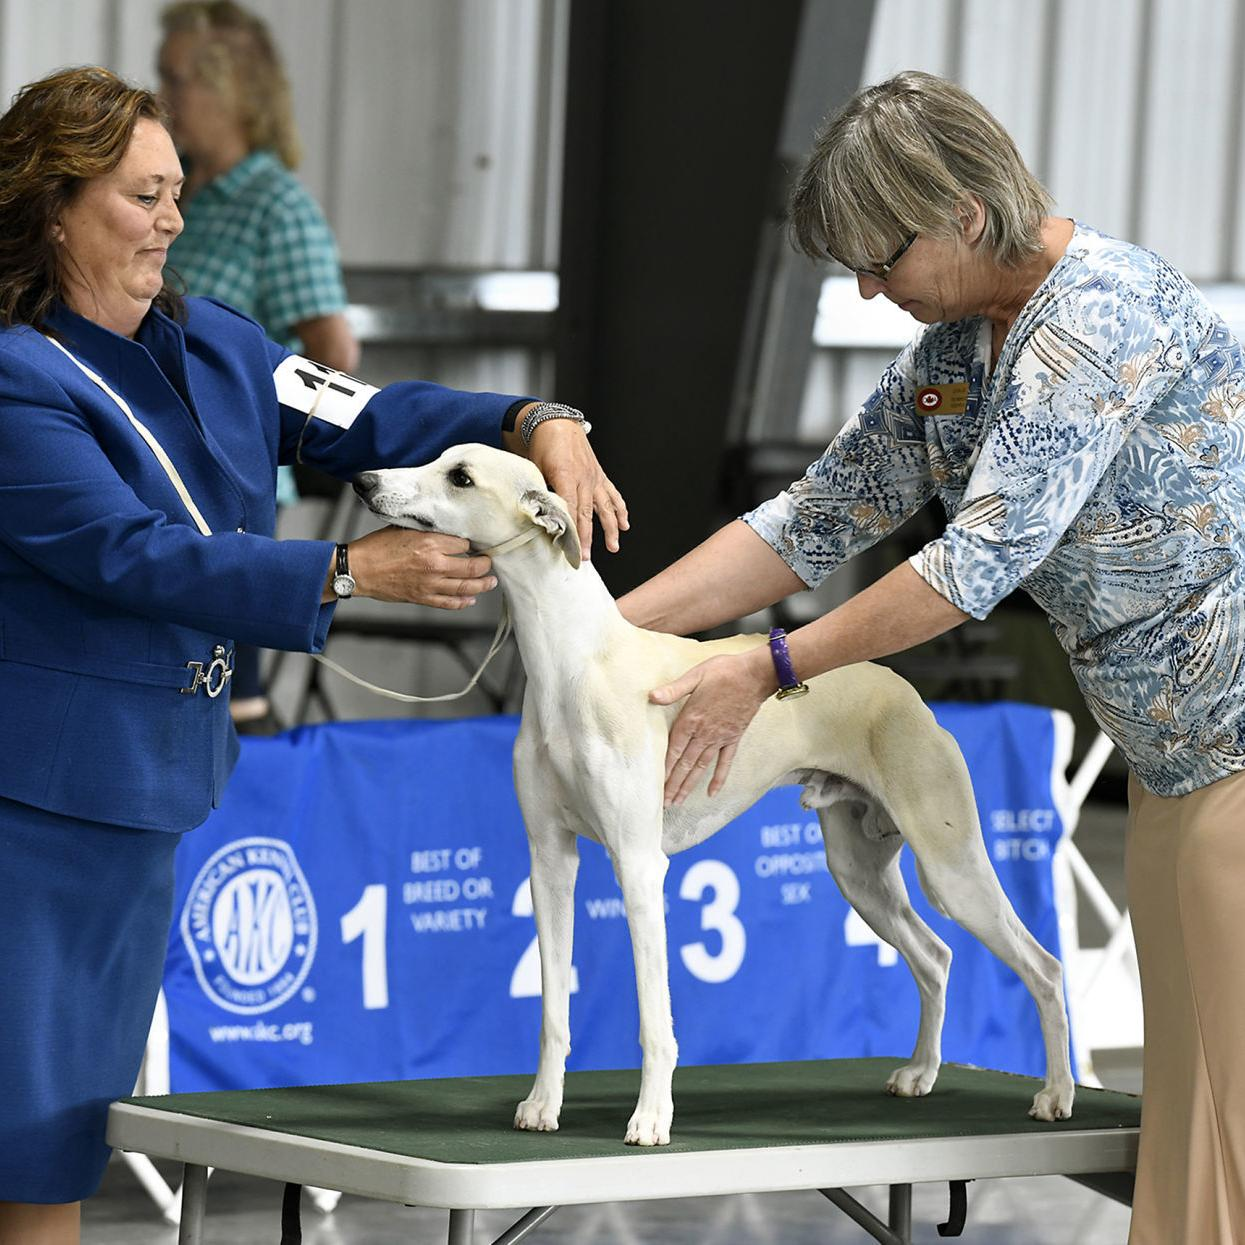 Hundreds of dogs come to Missoula for annual dog show